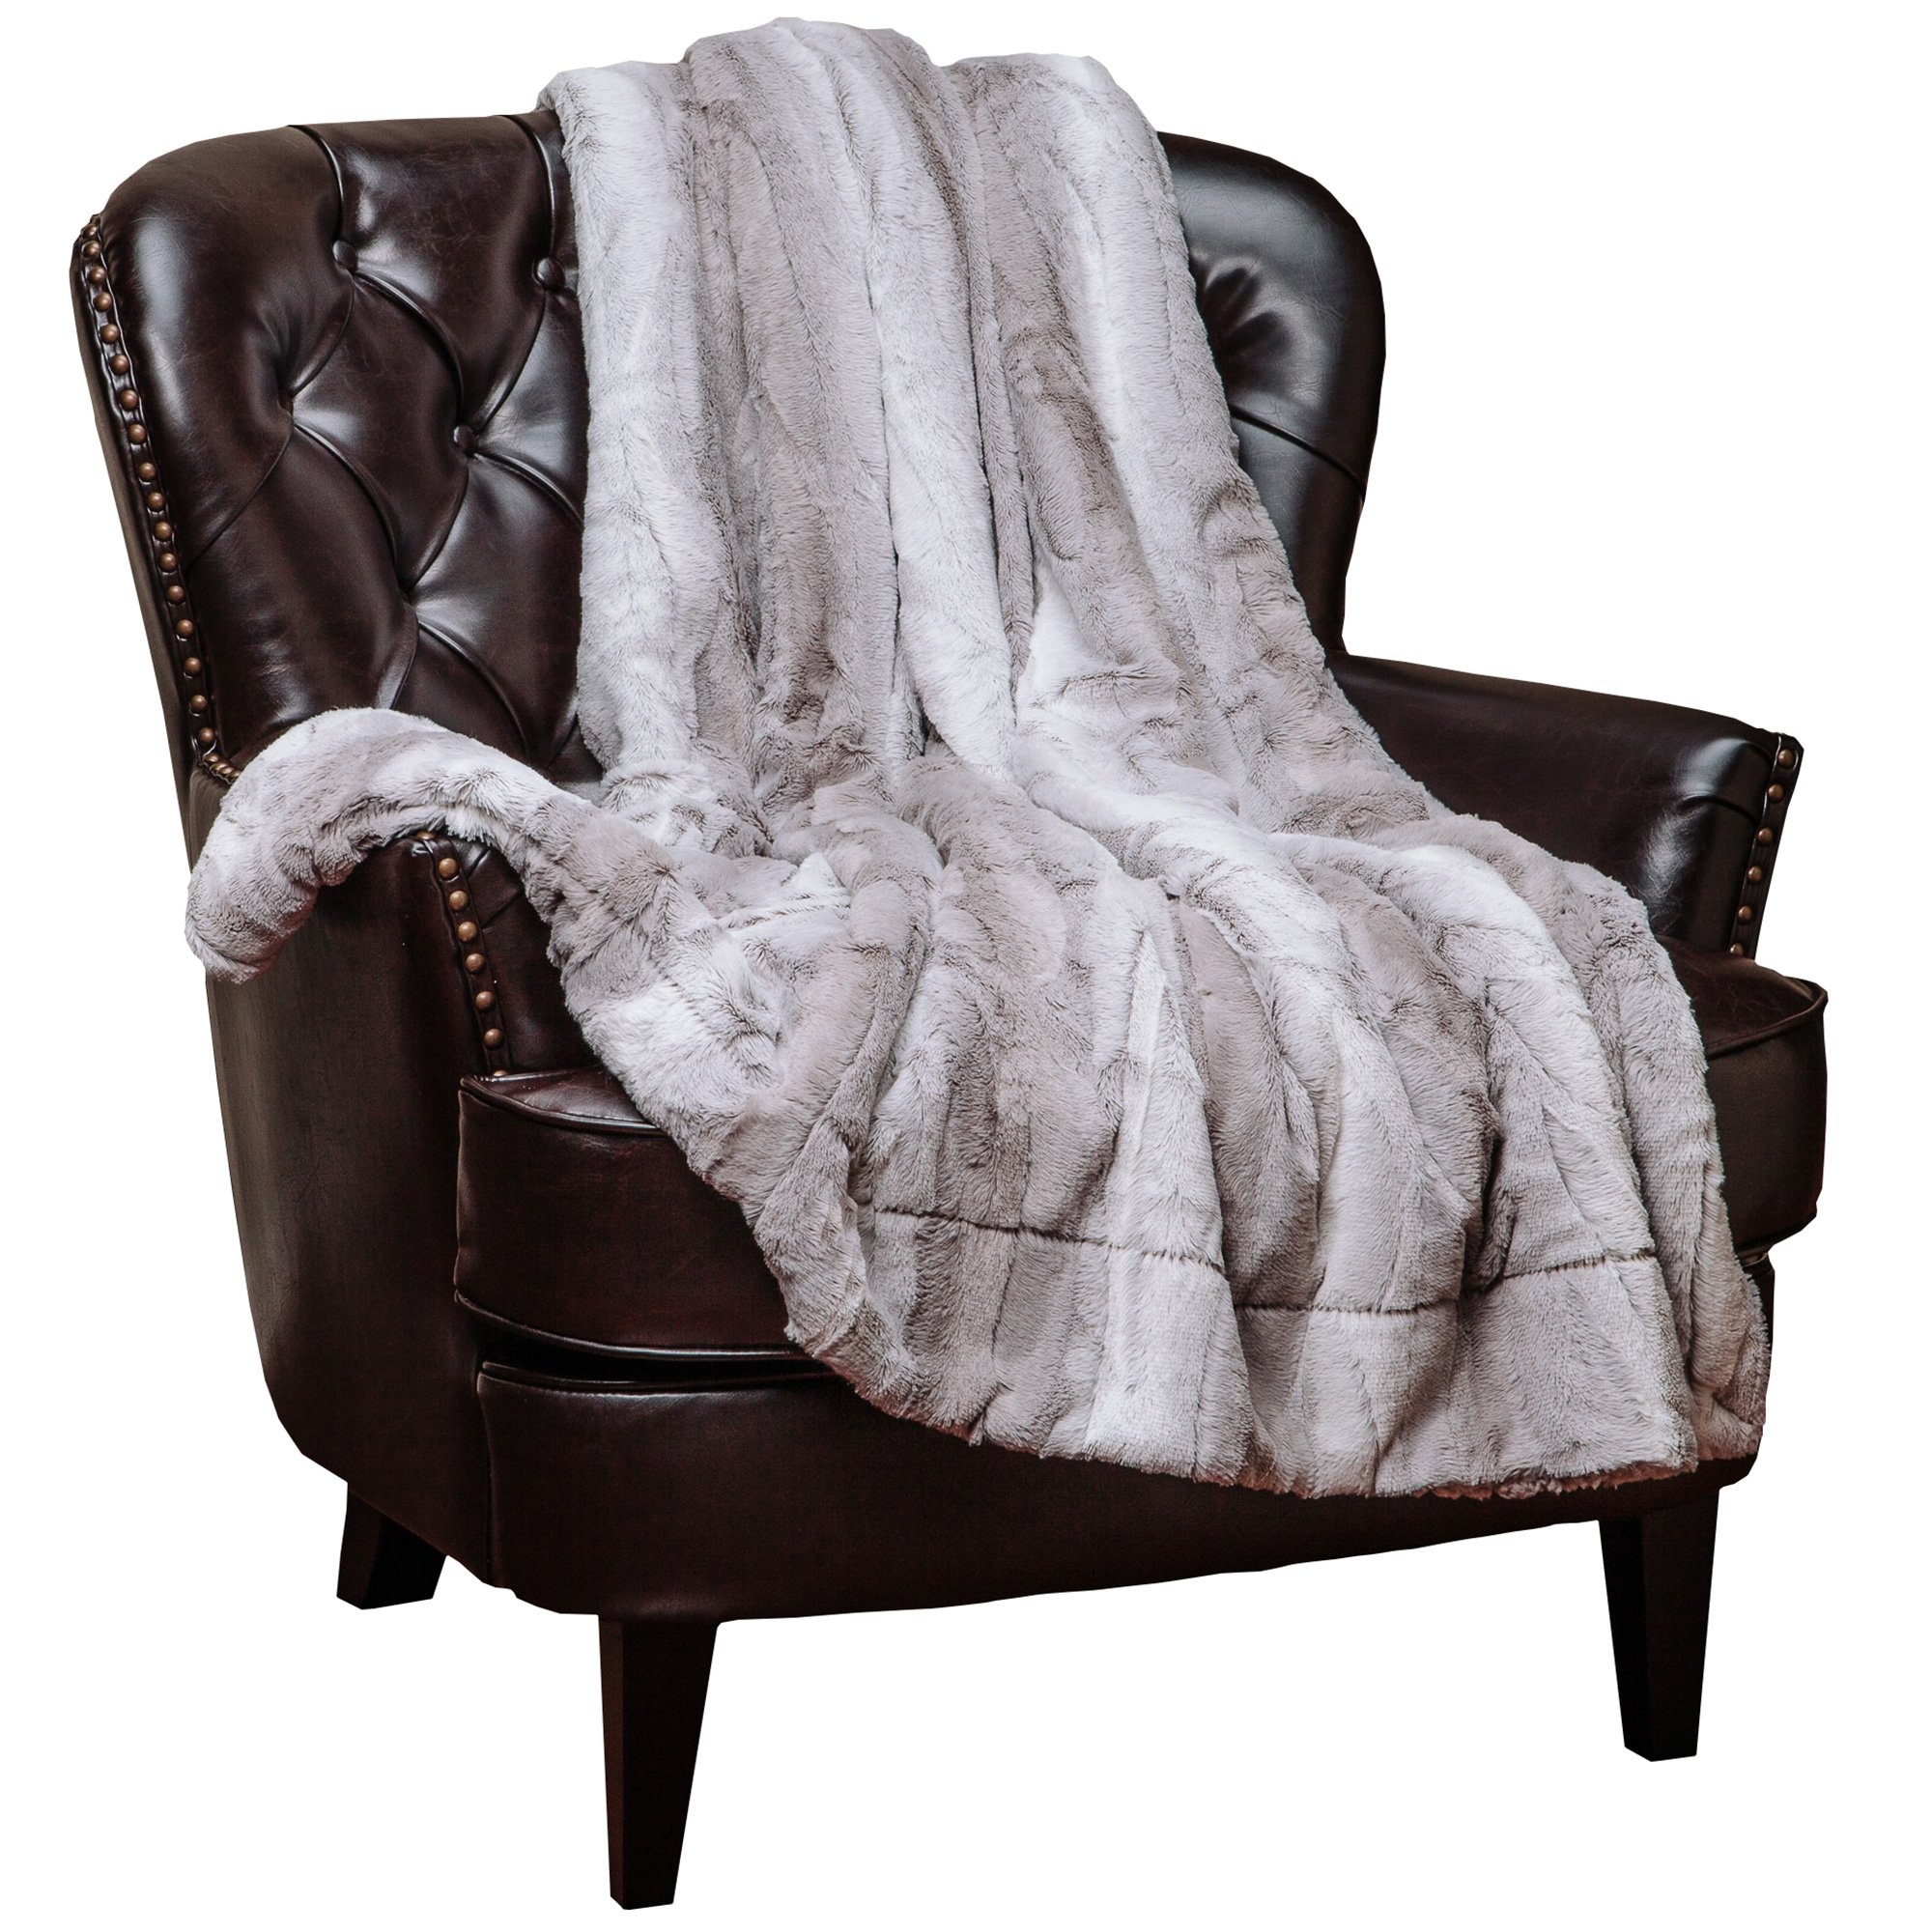 Chanasya Super Soft Fuzzy Fur Elegant Throw Blanket | Faux Fur Falling Leaf Pattern with Fluffy Plush Sherpa Grey Microfiber Blanket for Bed Couch Living Bed Room - Queen - Grey and White